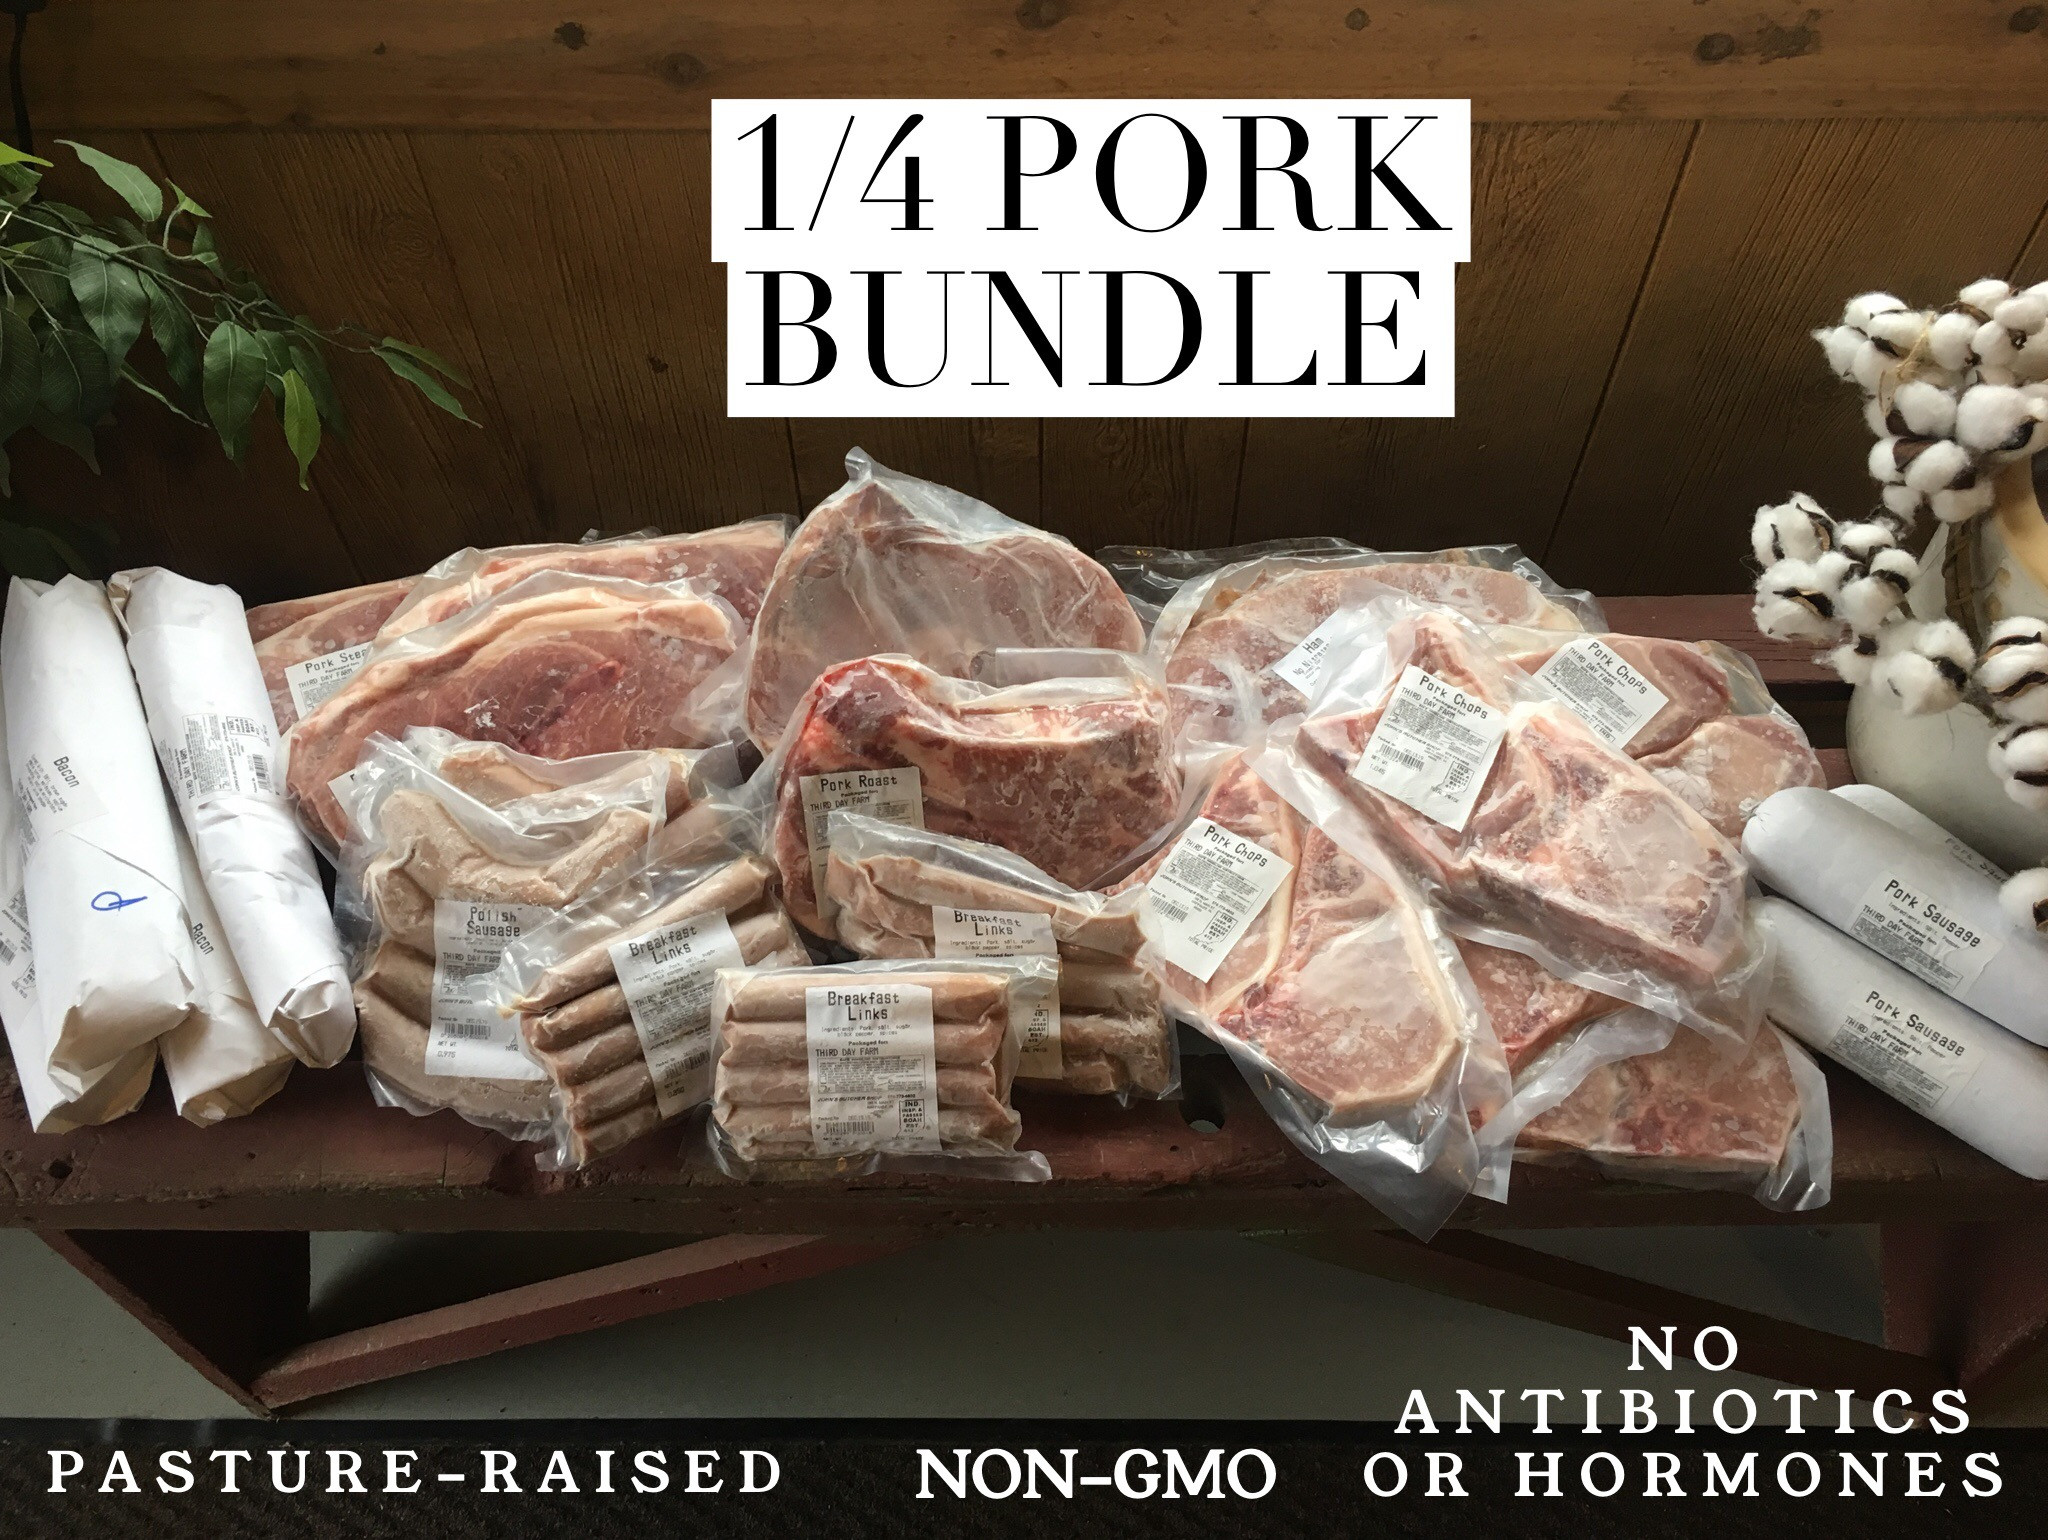 Bundle-Pork-1:4.JPG